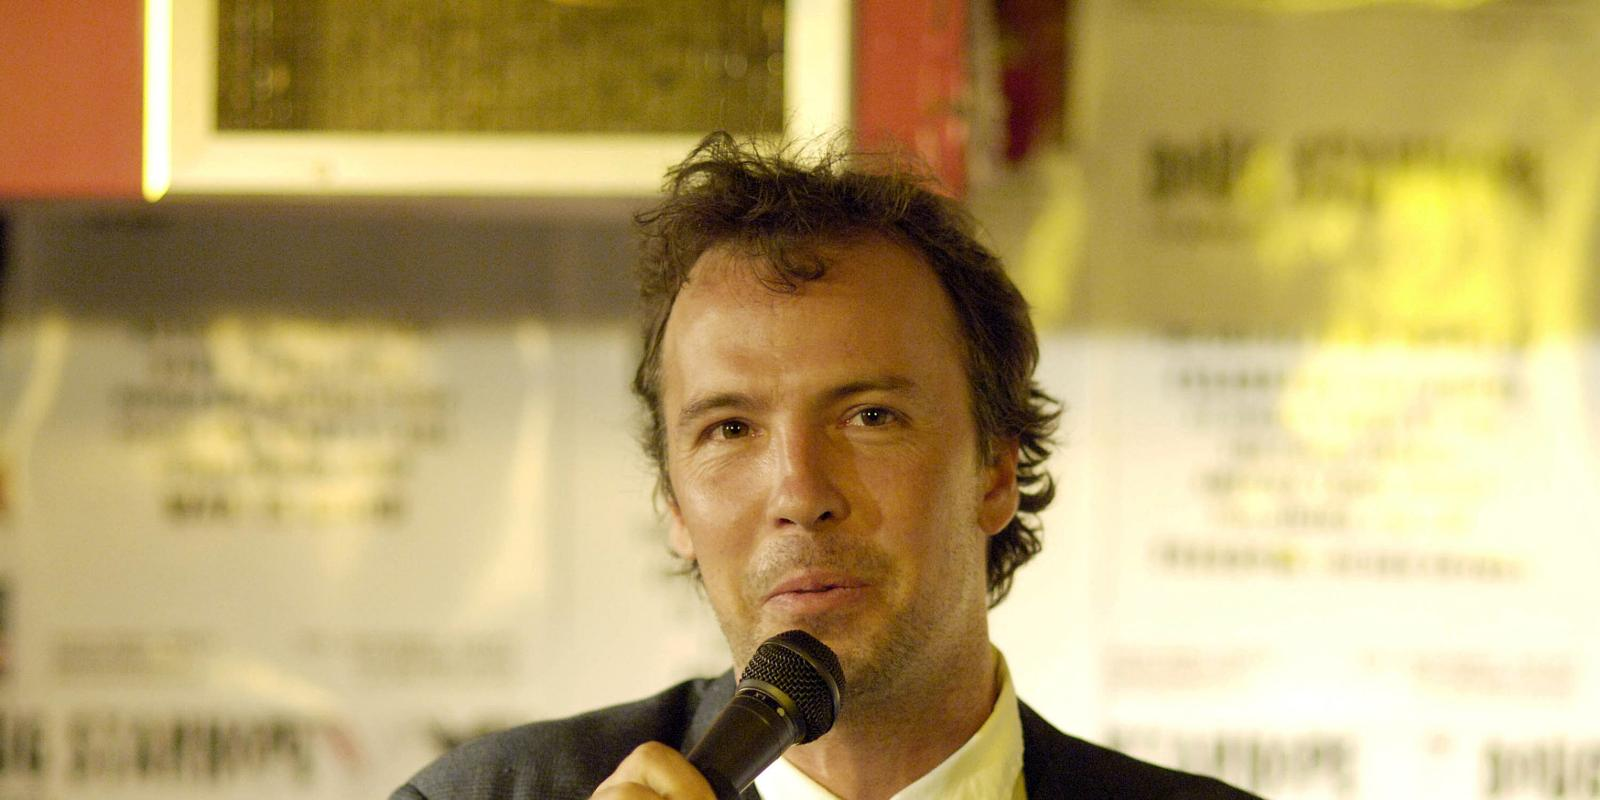 doug stanhope deadbeat herodoug stanhope digging up mother, doug stanhope instagram, doug stanhope podcast, doug stanhope young, doug stanhope quotes, doug stanhope house, doug stanhope vk, doug stanhope deadbeat hero, doug stanhope louis, doug stanhope wiki, doug stanhope tour, doug stanhope 2017, doug stanhope best, doug stanhope address, doug stanhope bible, doug stanhope merch, doug stanhope vegetarian, doug stanhope cd, doug stanhope quites, doug stanhope site